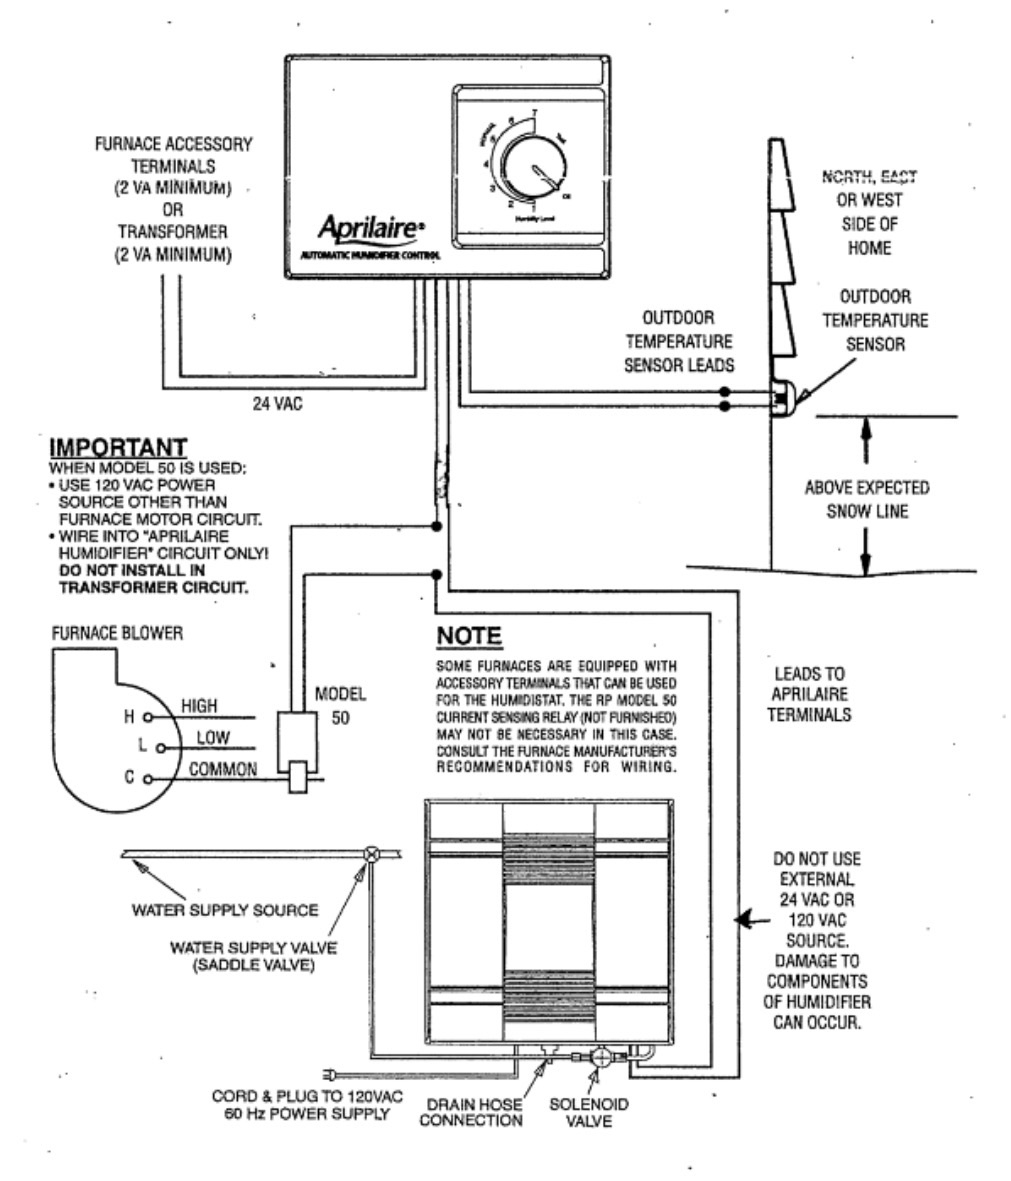 Heating - Wiring Aprilaire 700 Humidifier To York Tg9* Furnace - Aprilaire Humidifier Wiring Diagram